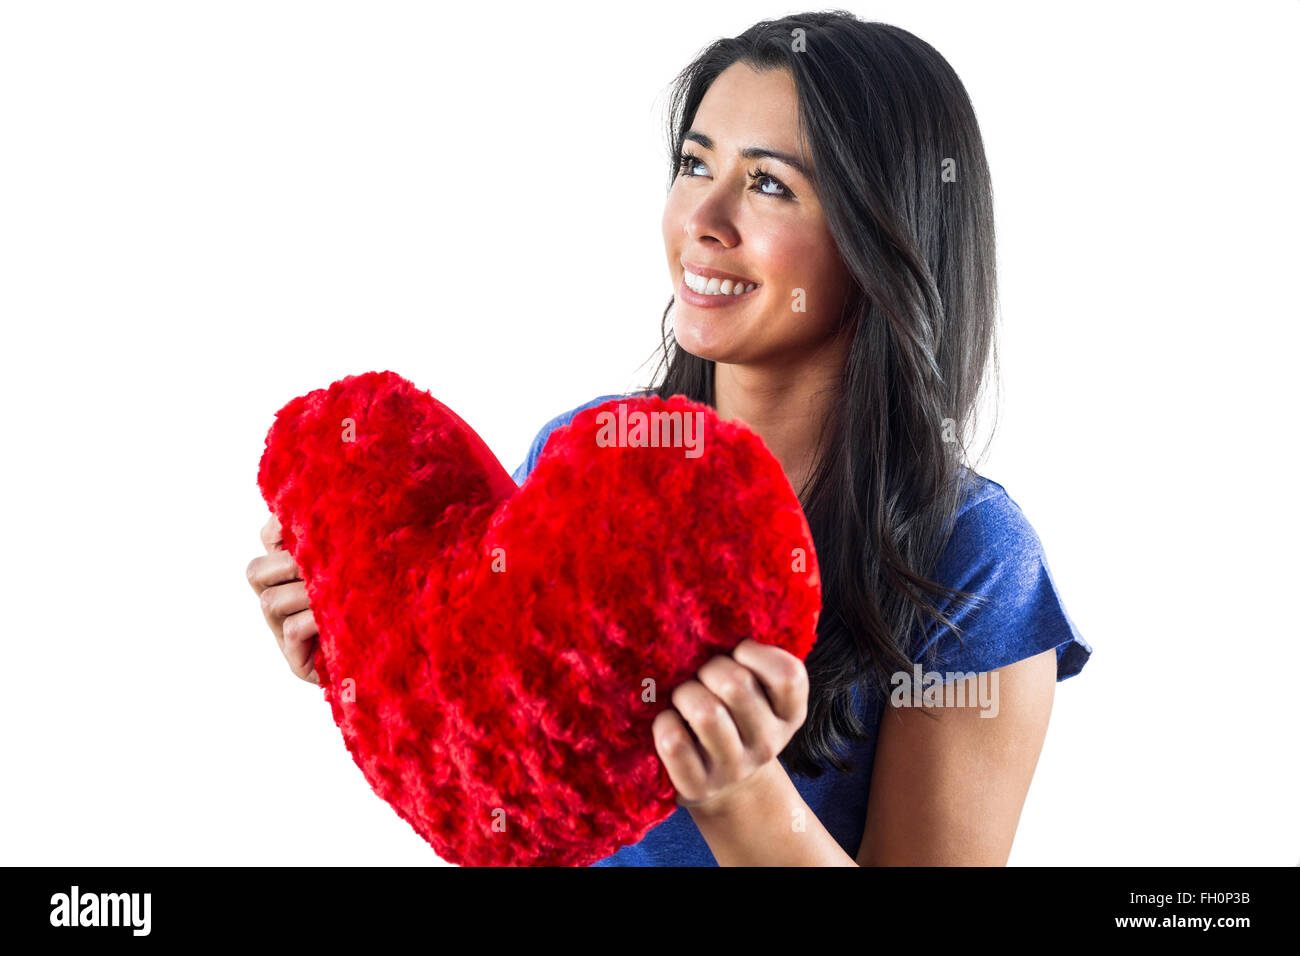 Smiling woman holding a heart shaped pillow - Stock Image